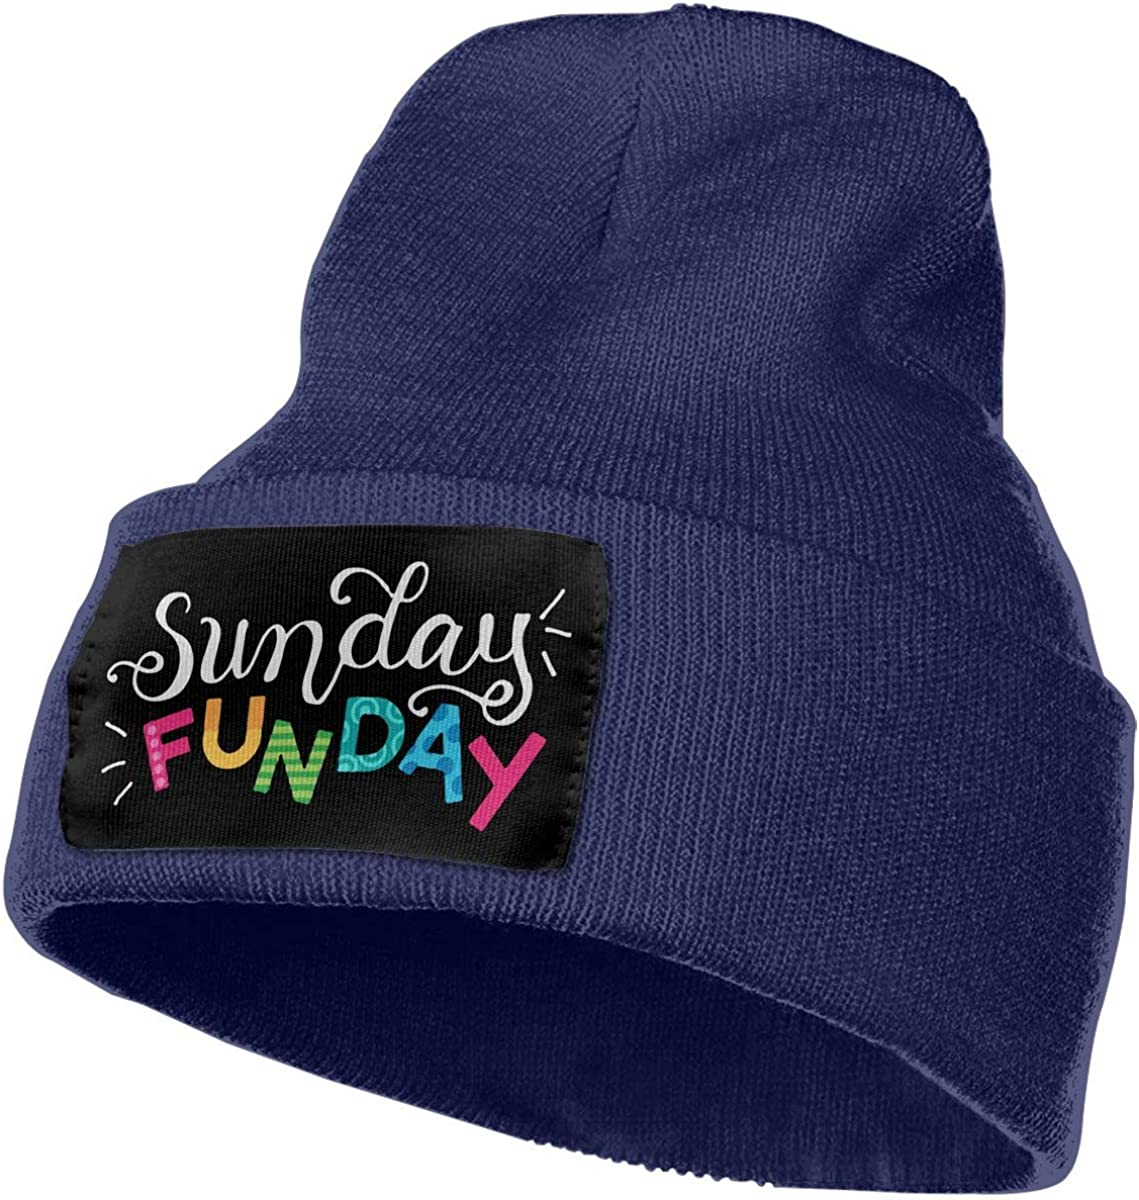 Sunday Funday Fashion Skull Cap Ydbve81-G Mens Womens 100/% Acrylic Knitted Hat Cap